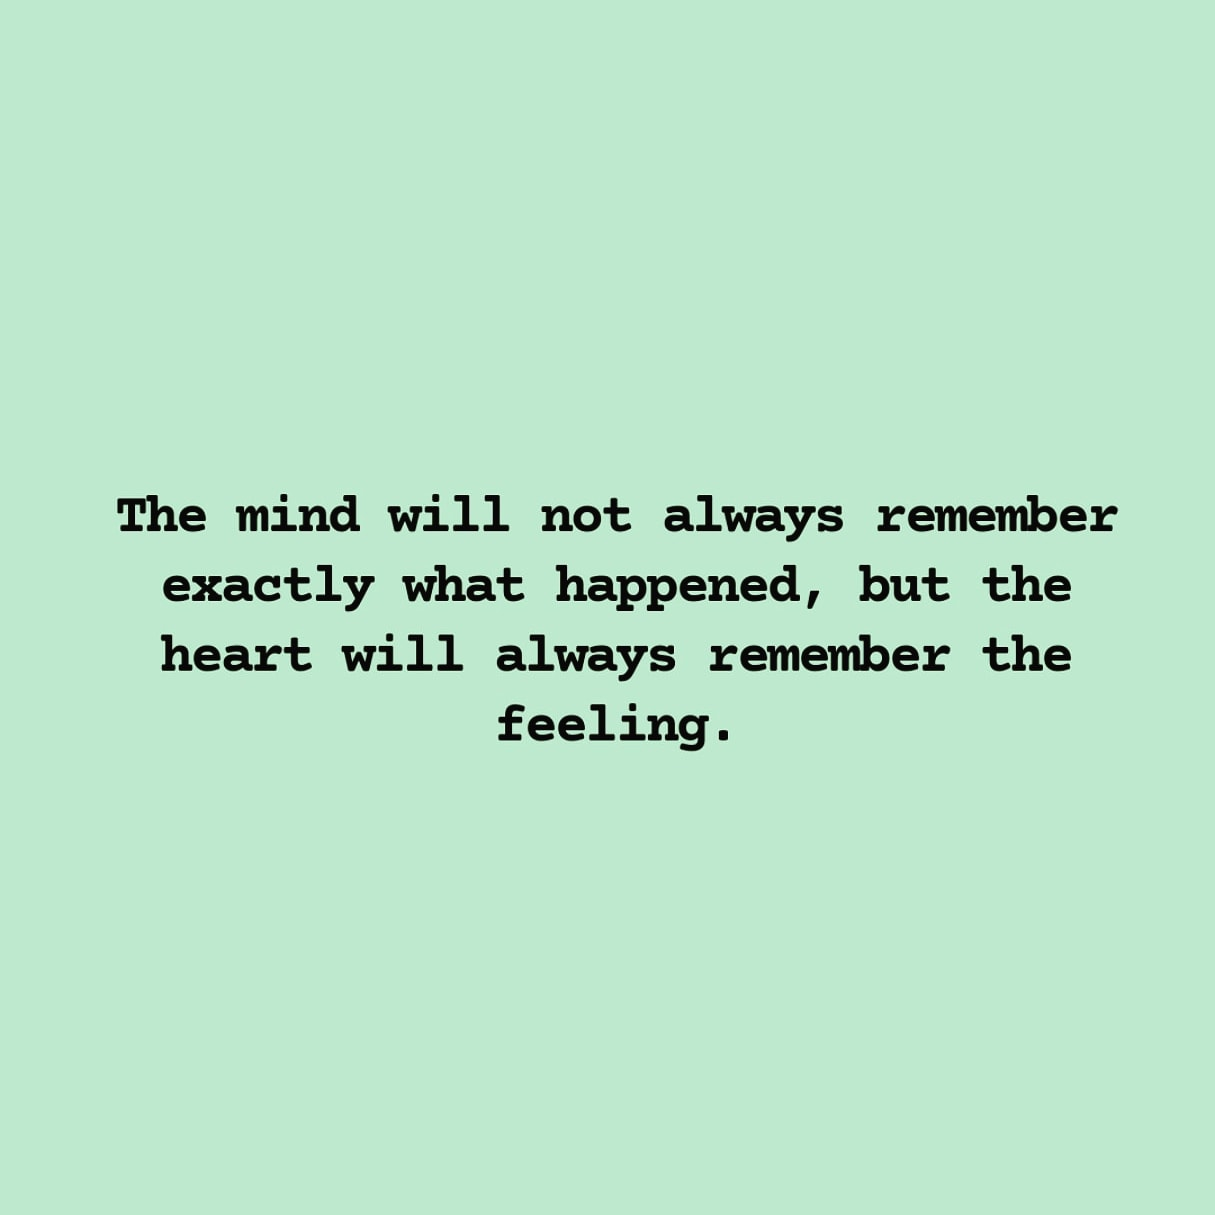 The mind will not always remember exactly what happened, but the heart will always remember the feeling. https://inspirational.ly